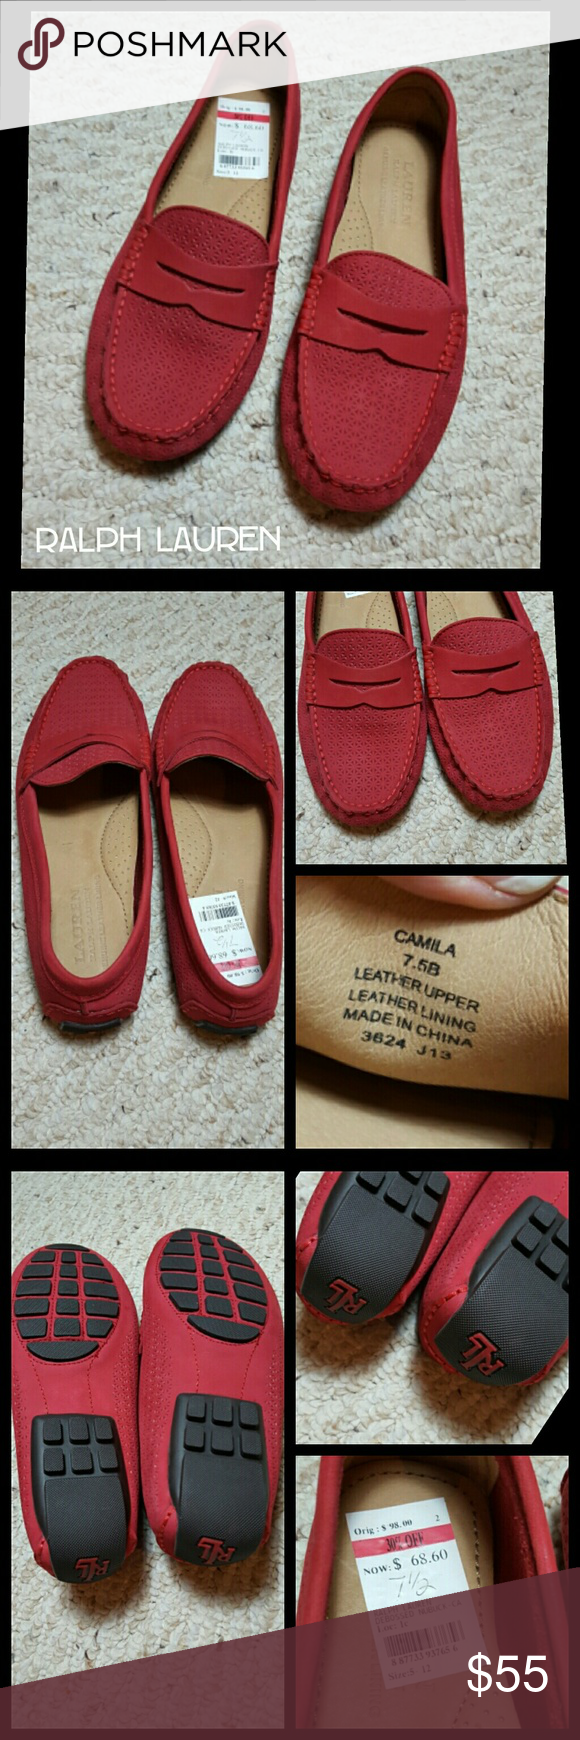 New Ralph Lauren Driver/Loafer New with tags  LAUREN  Camila, Debossed Nubuck True to size 7.5 No trades Please Ralph Lauren Shoes Flats & Loafers